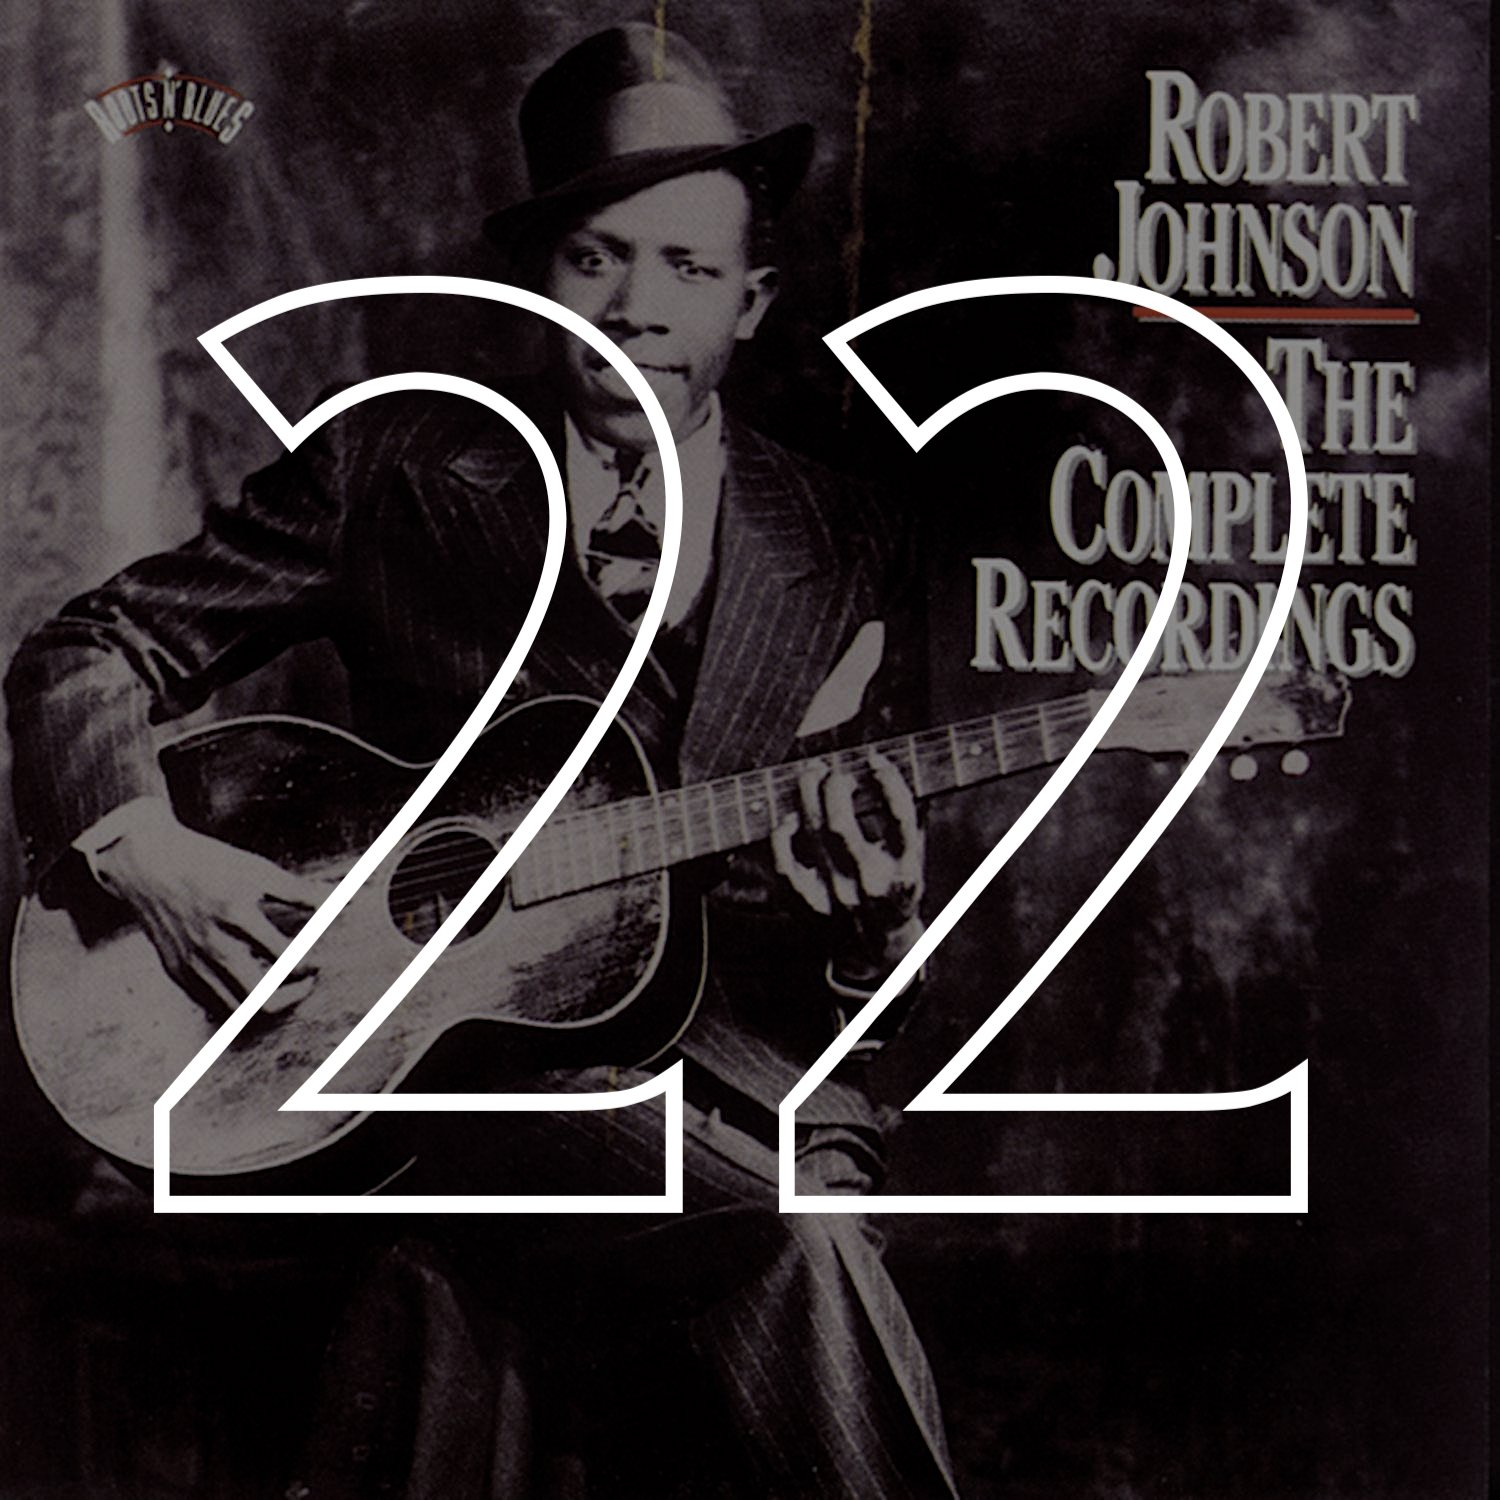 22 The Complete Recordings.jpg